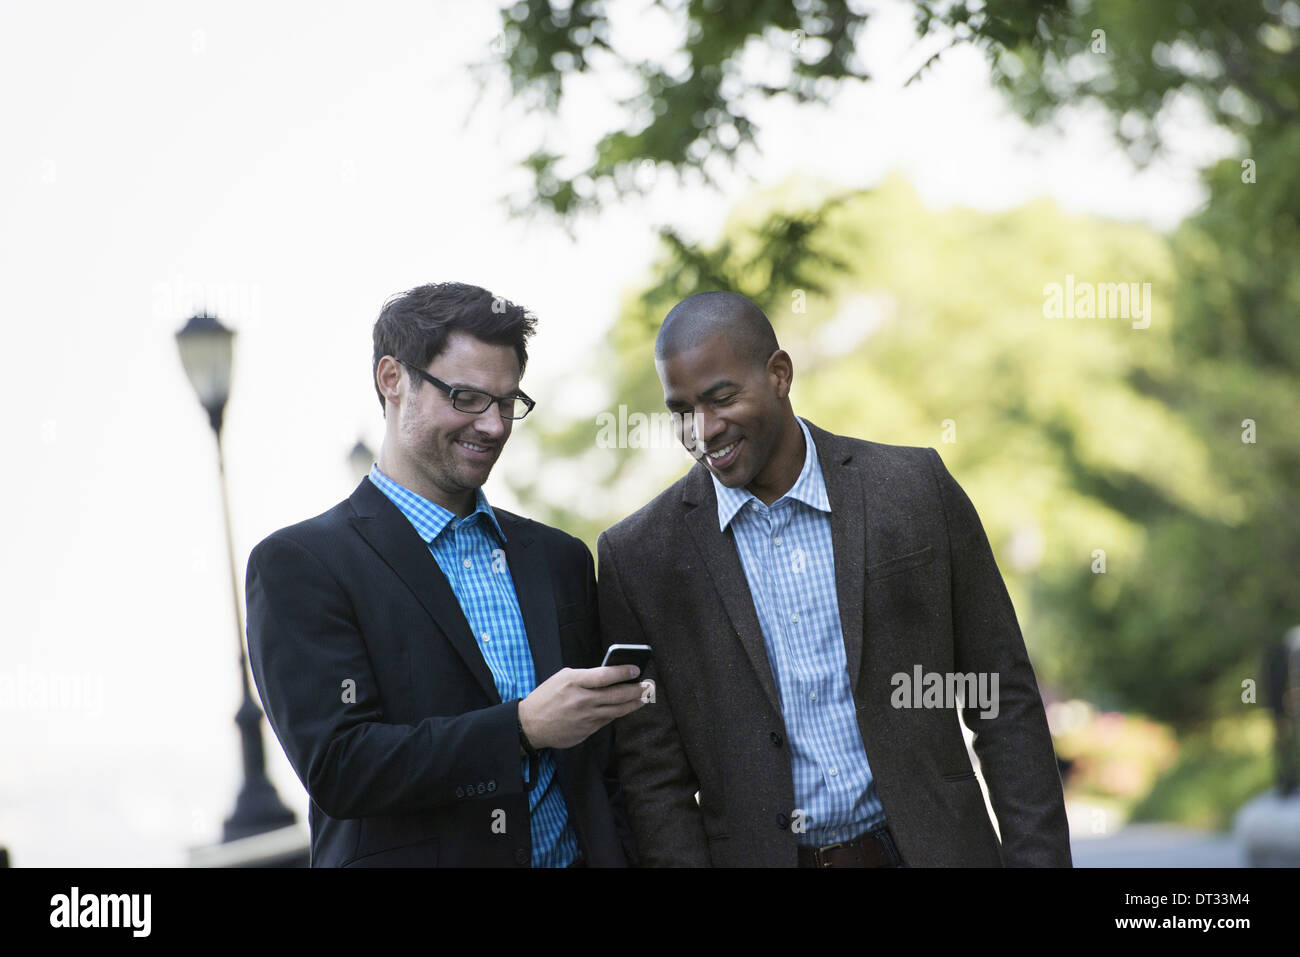 Two men walking side by side one showing the other his smart phone - Stock Image